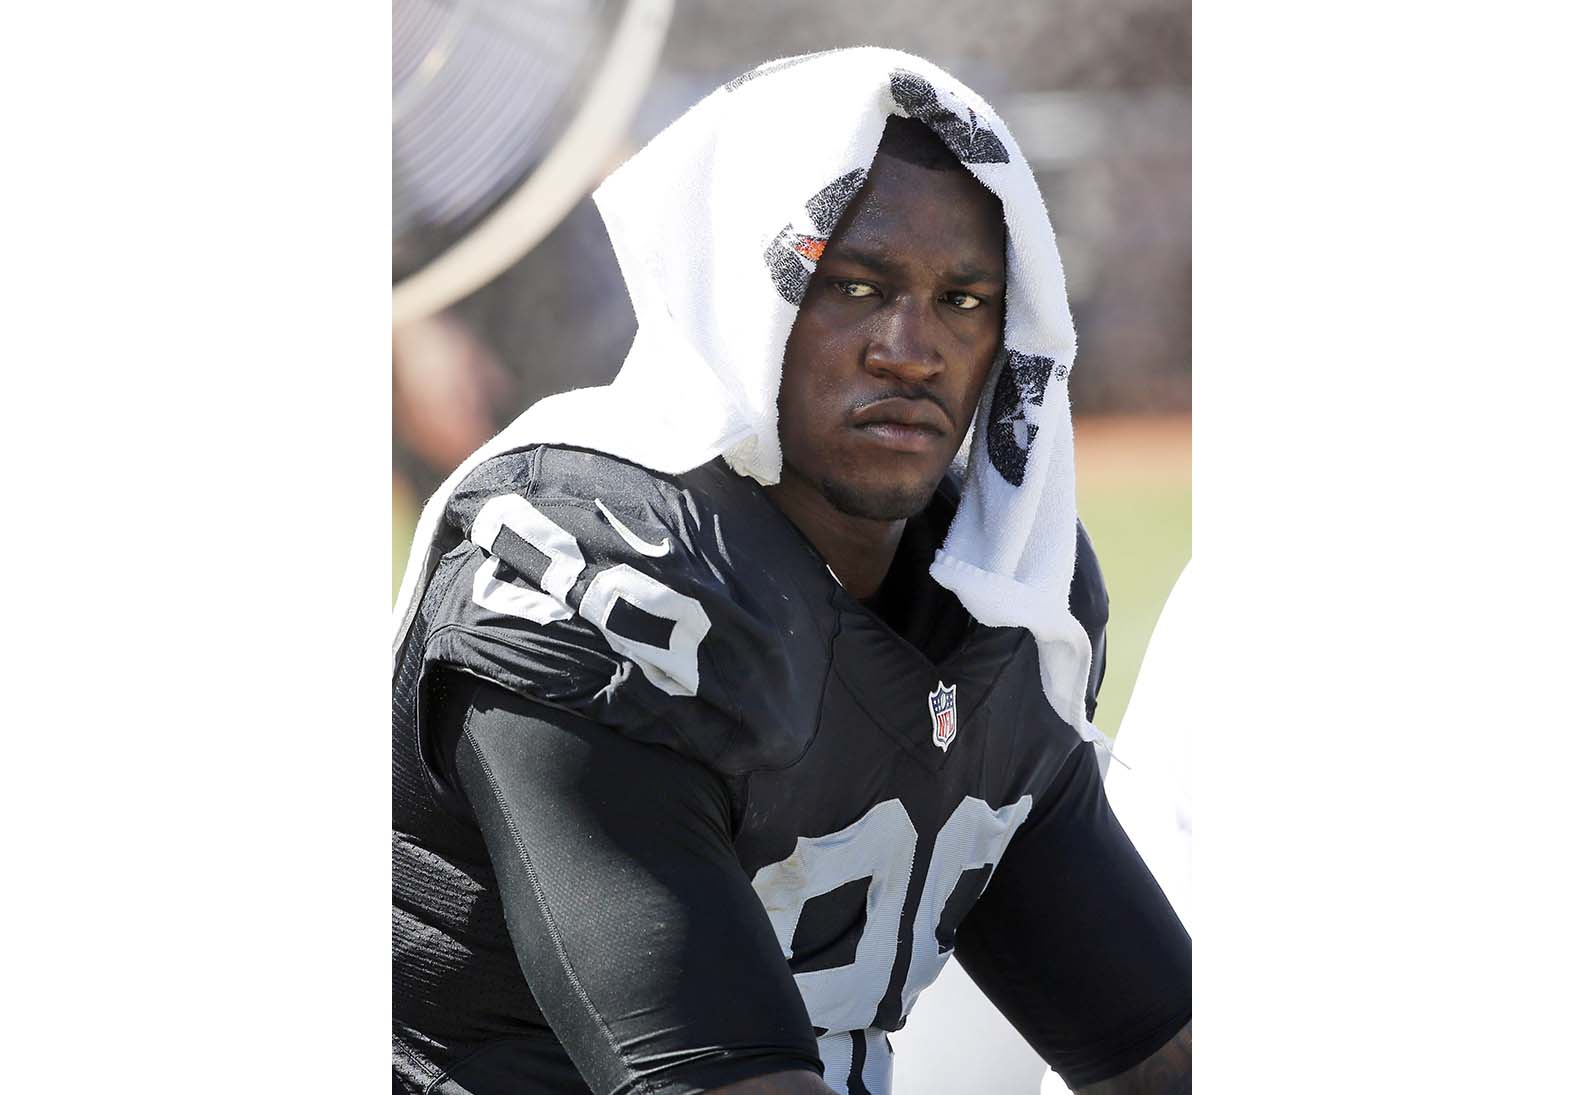 Oakland Raiders linebacker Aldon Smith was suspended Tuesday by the NFL for one calendar year because of violations of the league's substance-abuse policy. (AP Photo/Tony Avelar, File)